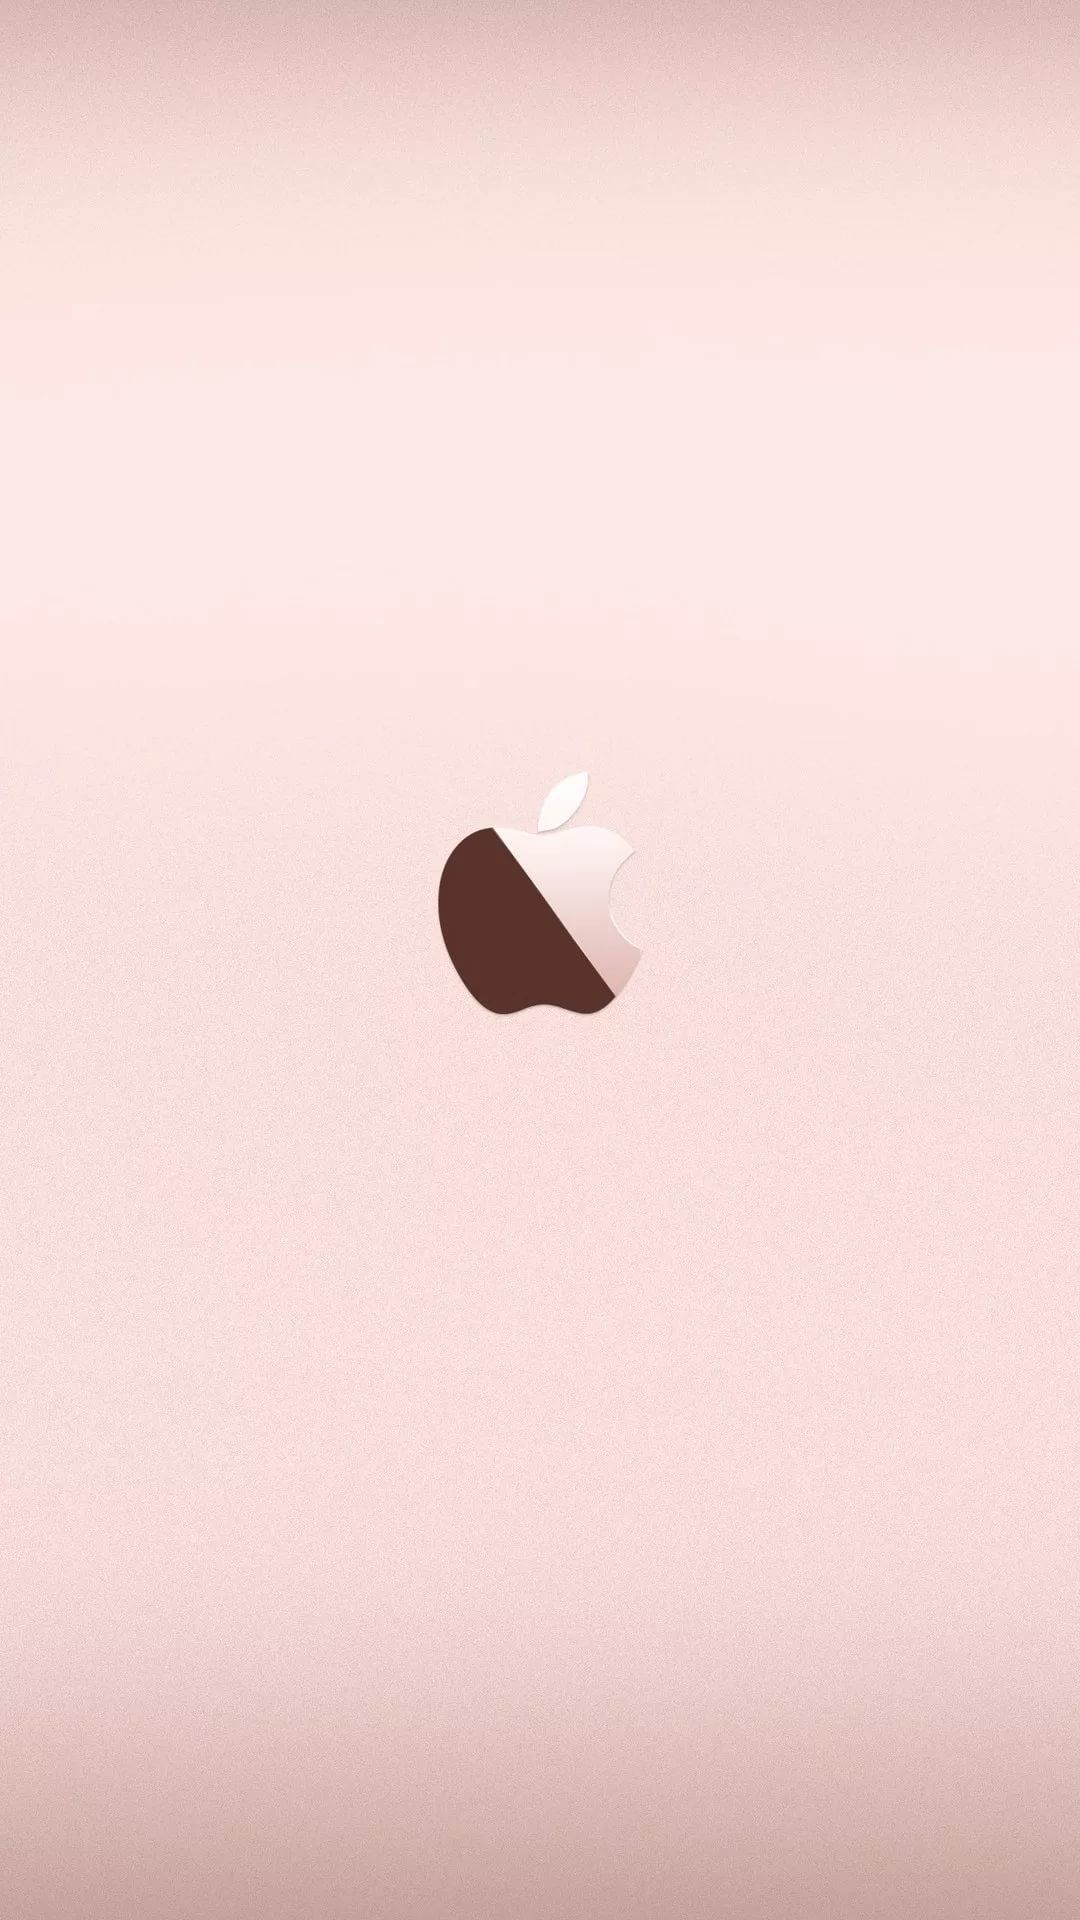 Rose Gold Apple iPhone 7 wallpaper